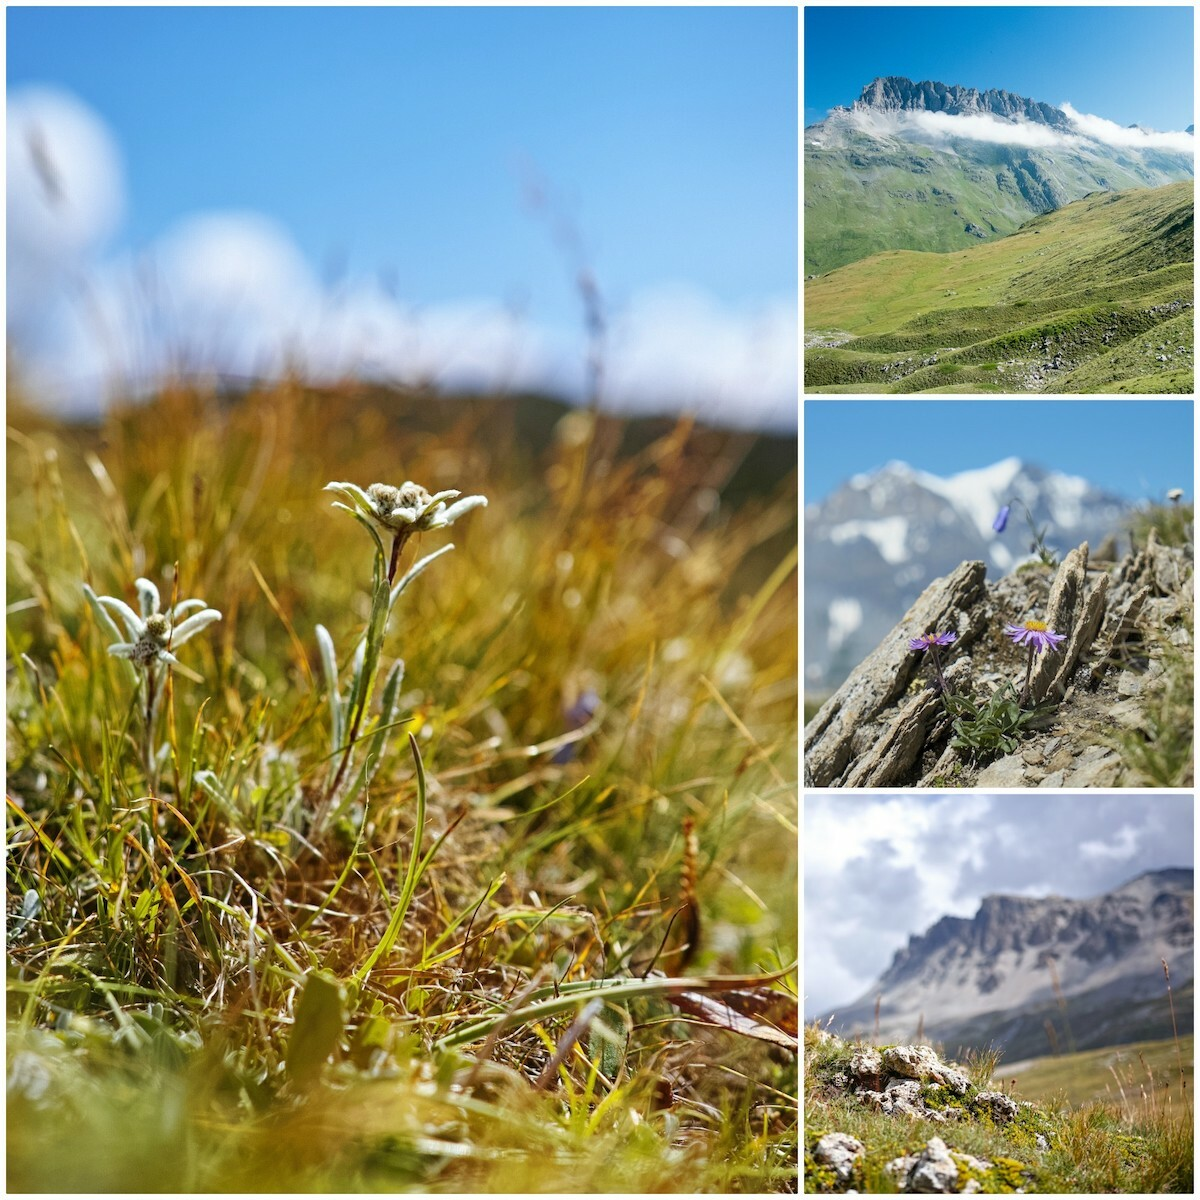 Parc National de la Vanoise © PIerre_BN CC BY 2.0